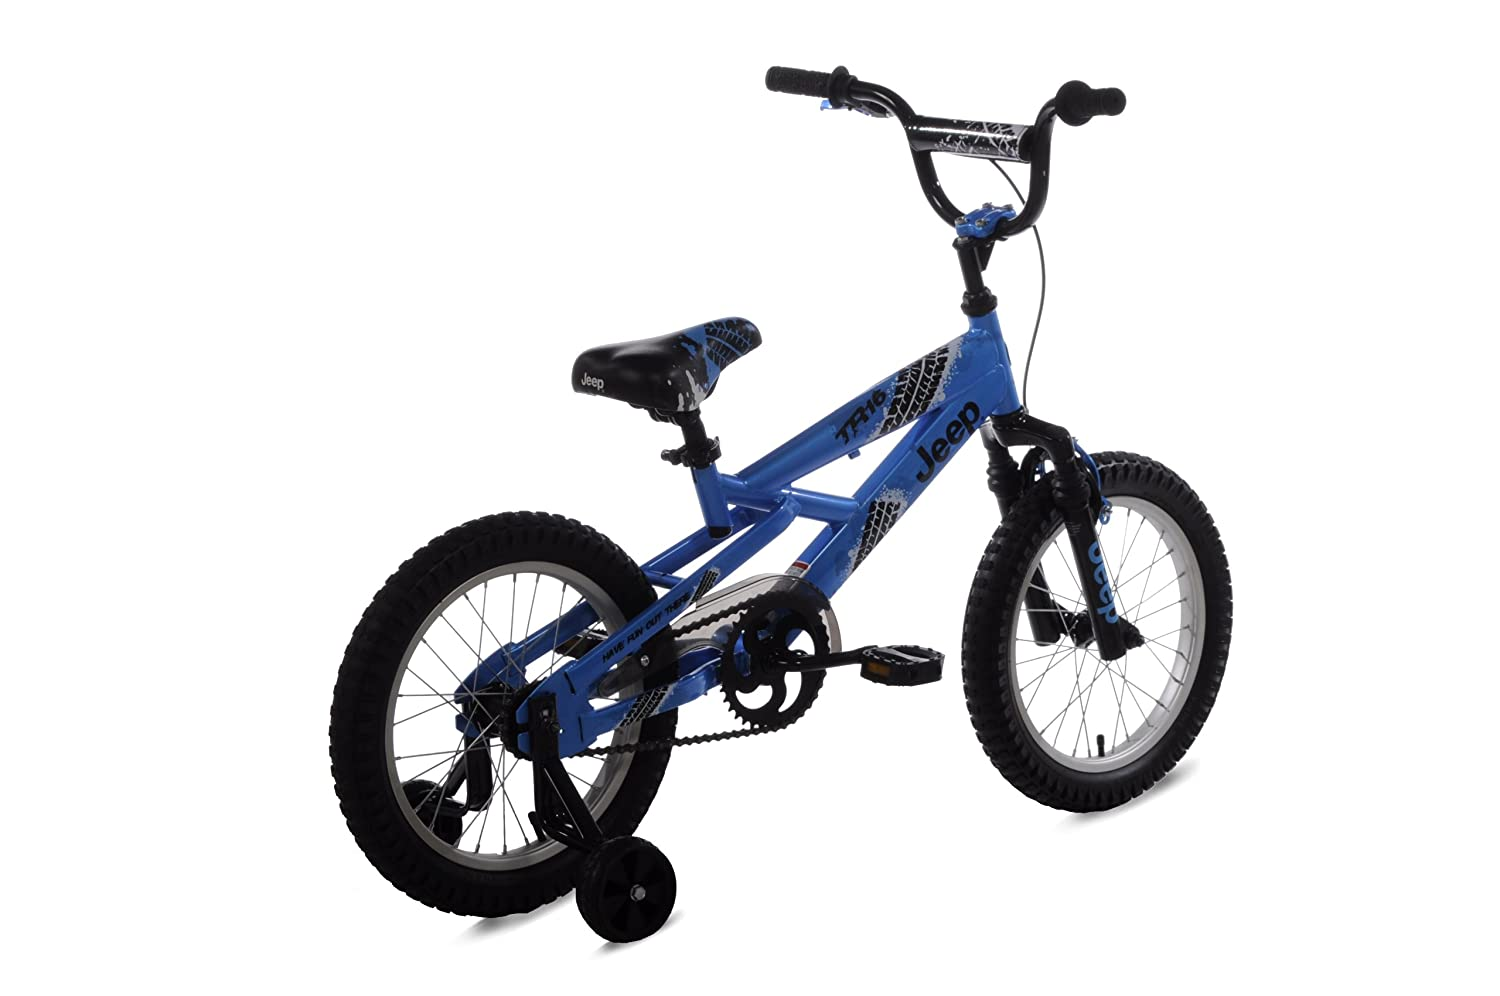 Cheap Bikes For Boys Amazon com Jeep Boy s Bike